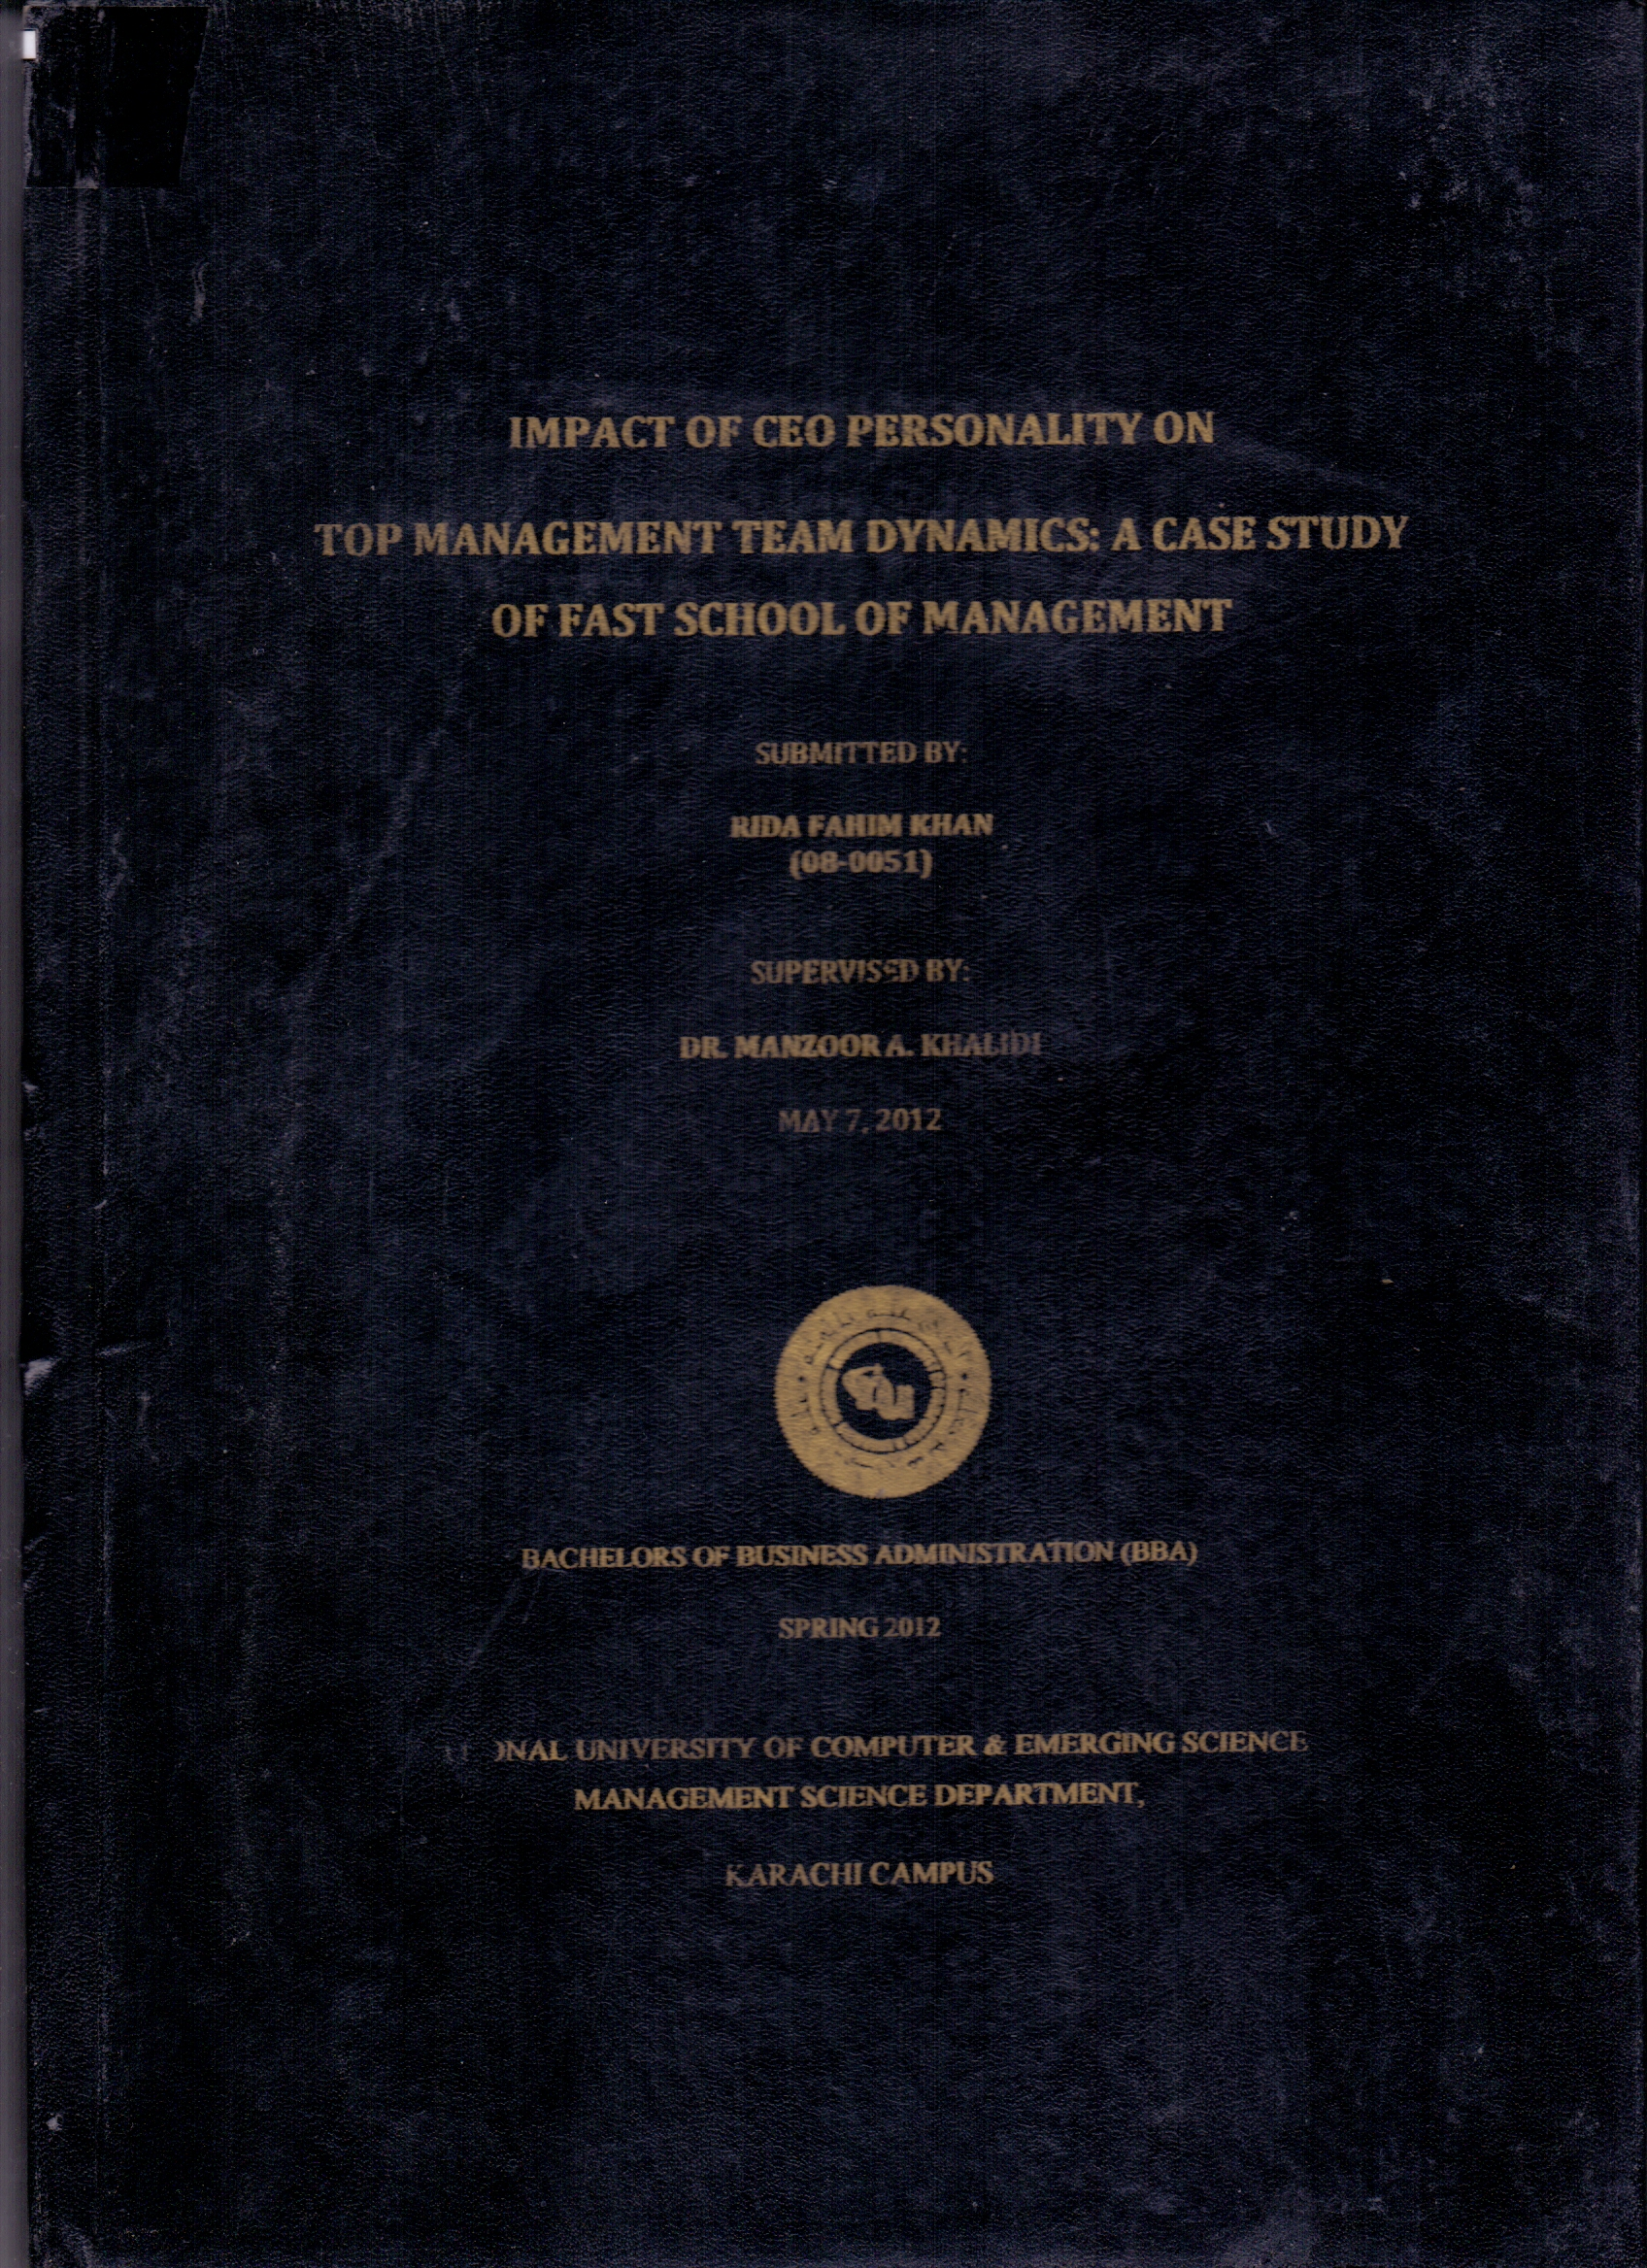 Impact of CEO Personality on Top Management Team Dynamics (08-0051) : A Case Study of FAST School of Management